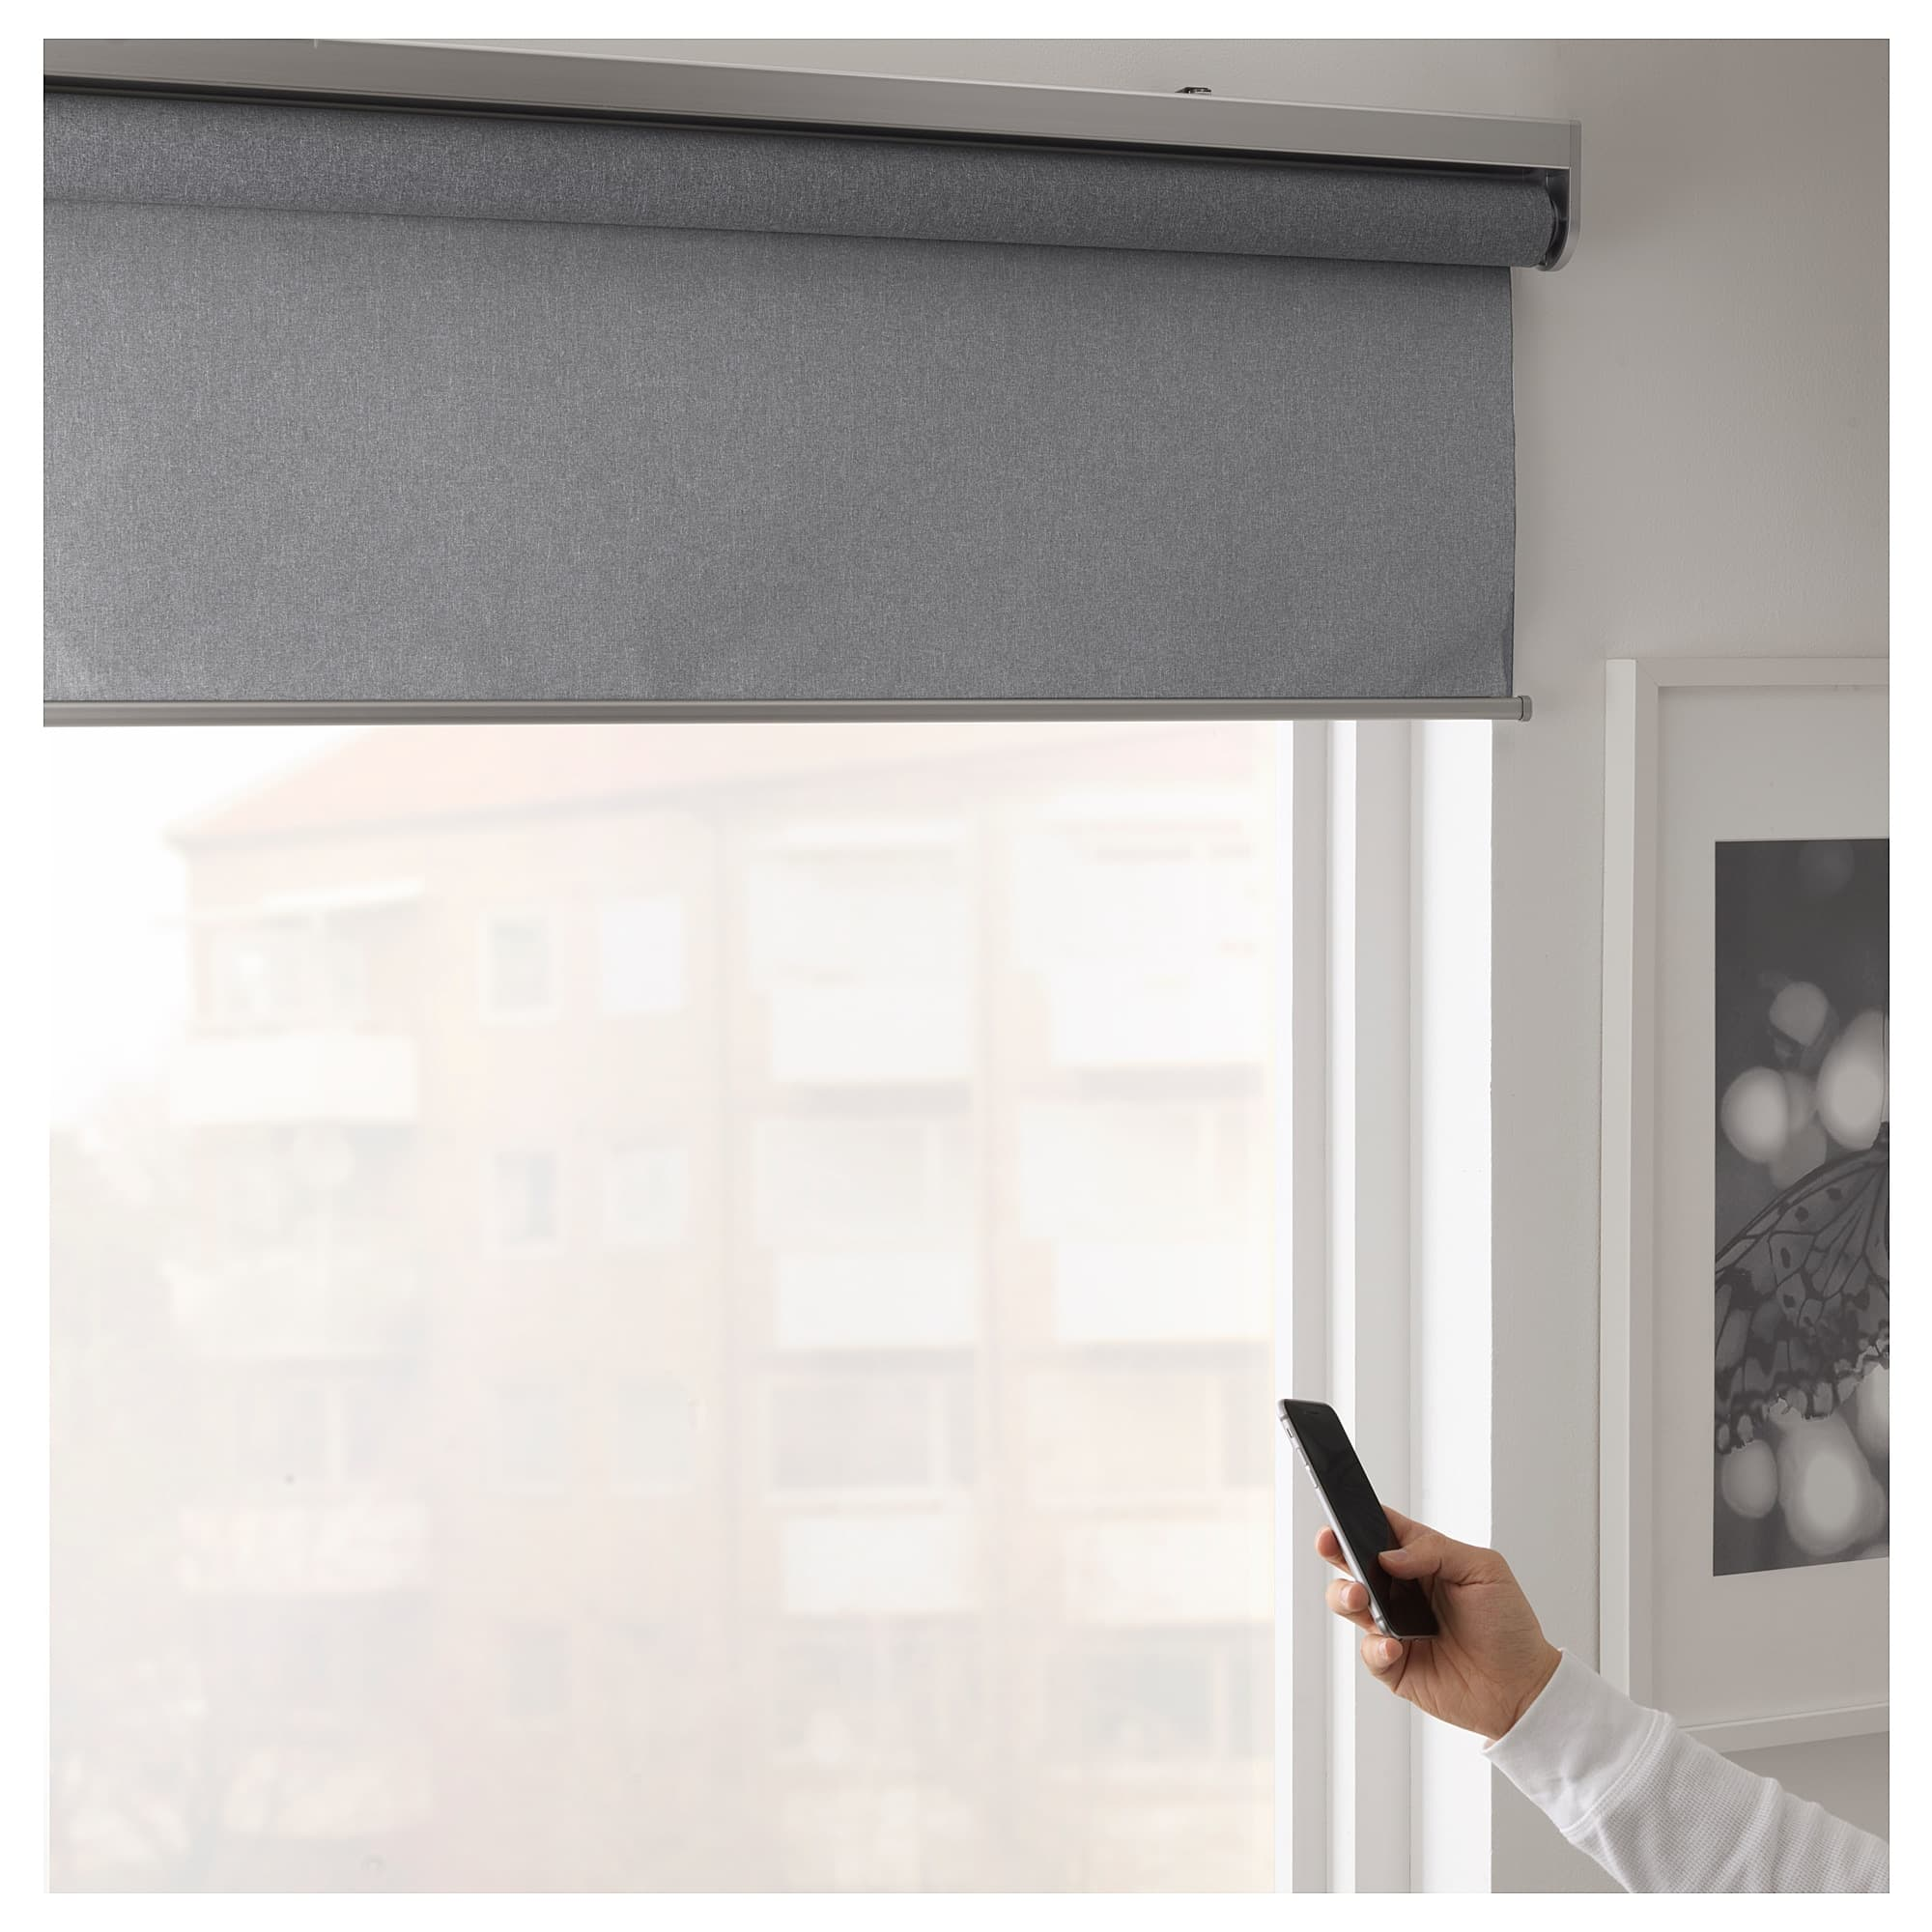 Ikea's new blinds work with your iPhone via homekit.